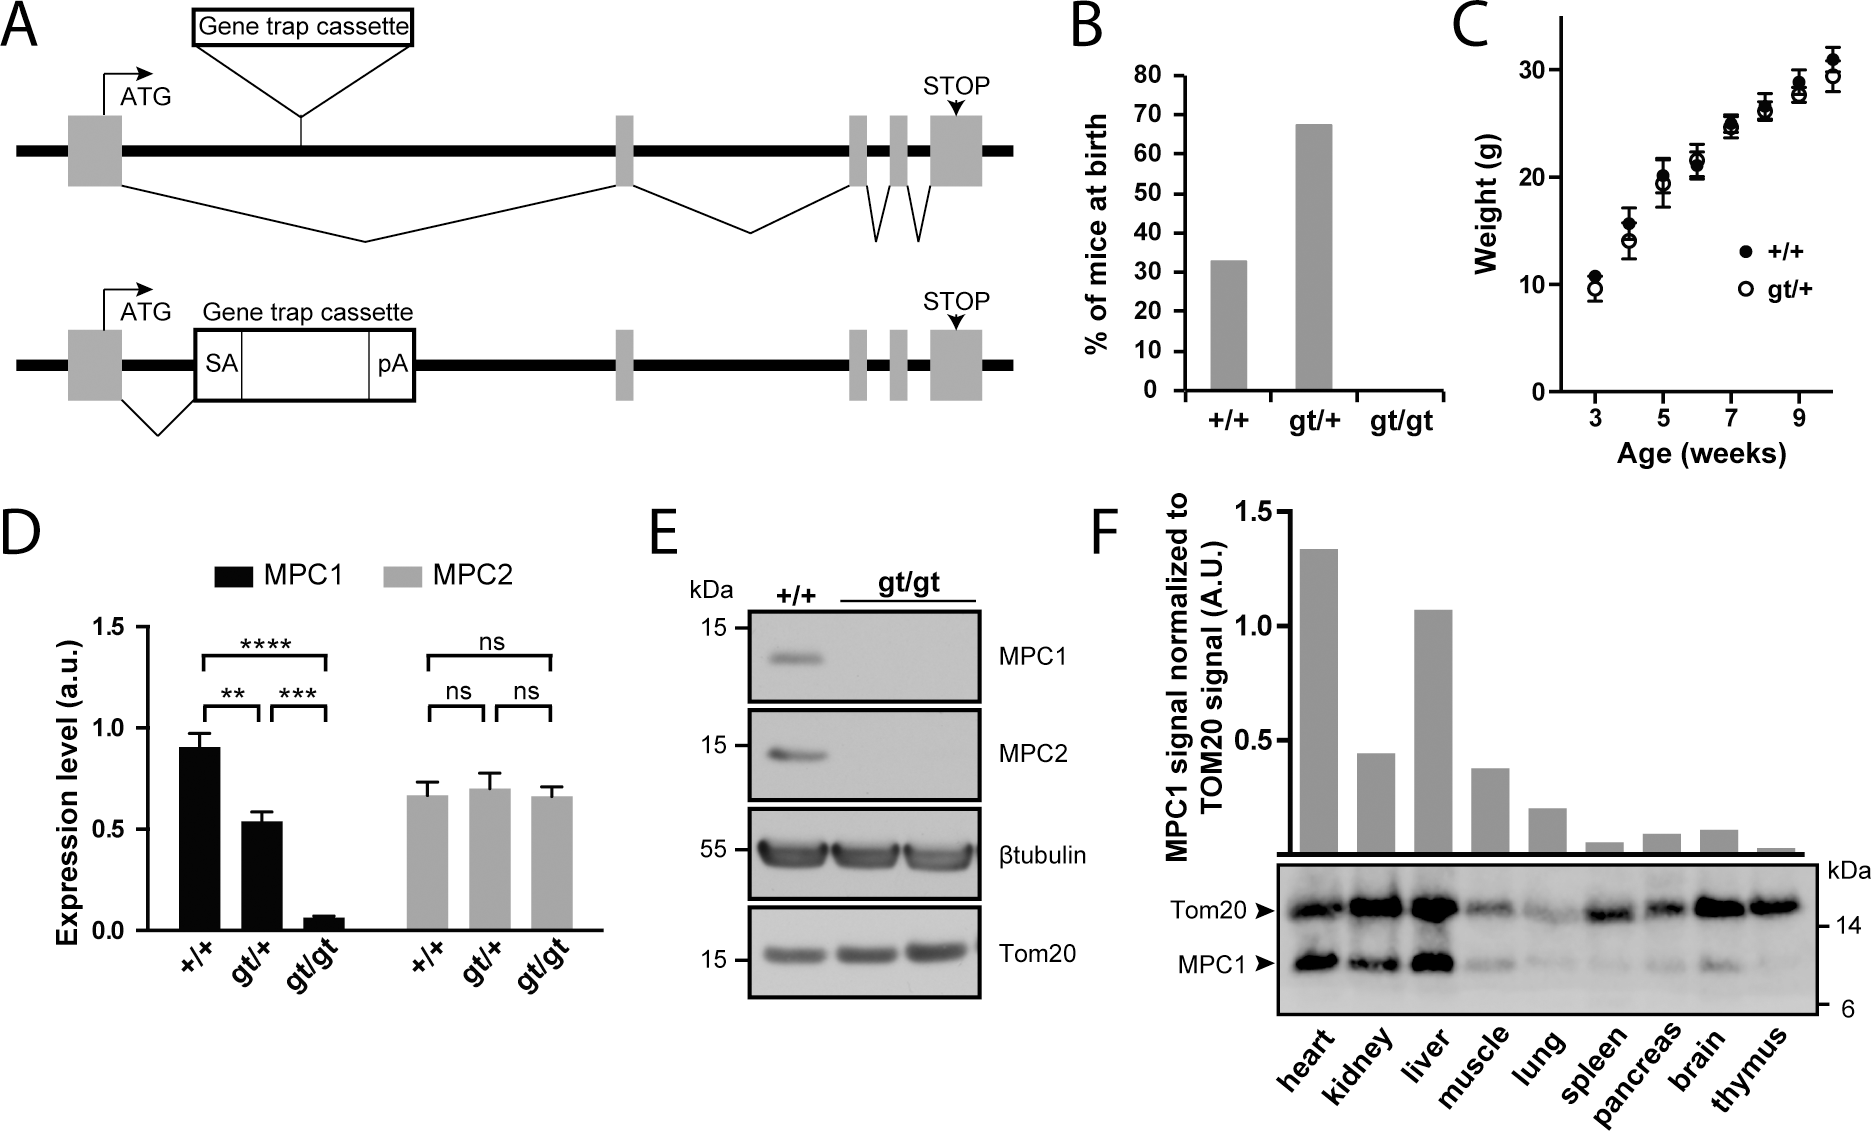 Disruption of the <i>MPC1</i> gene in mice.